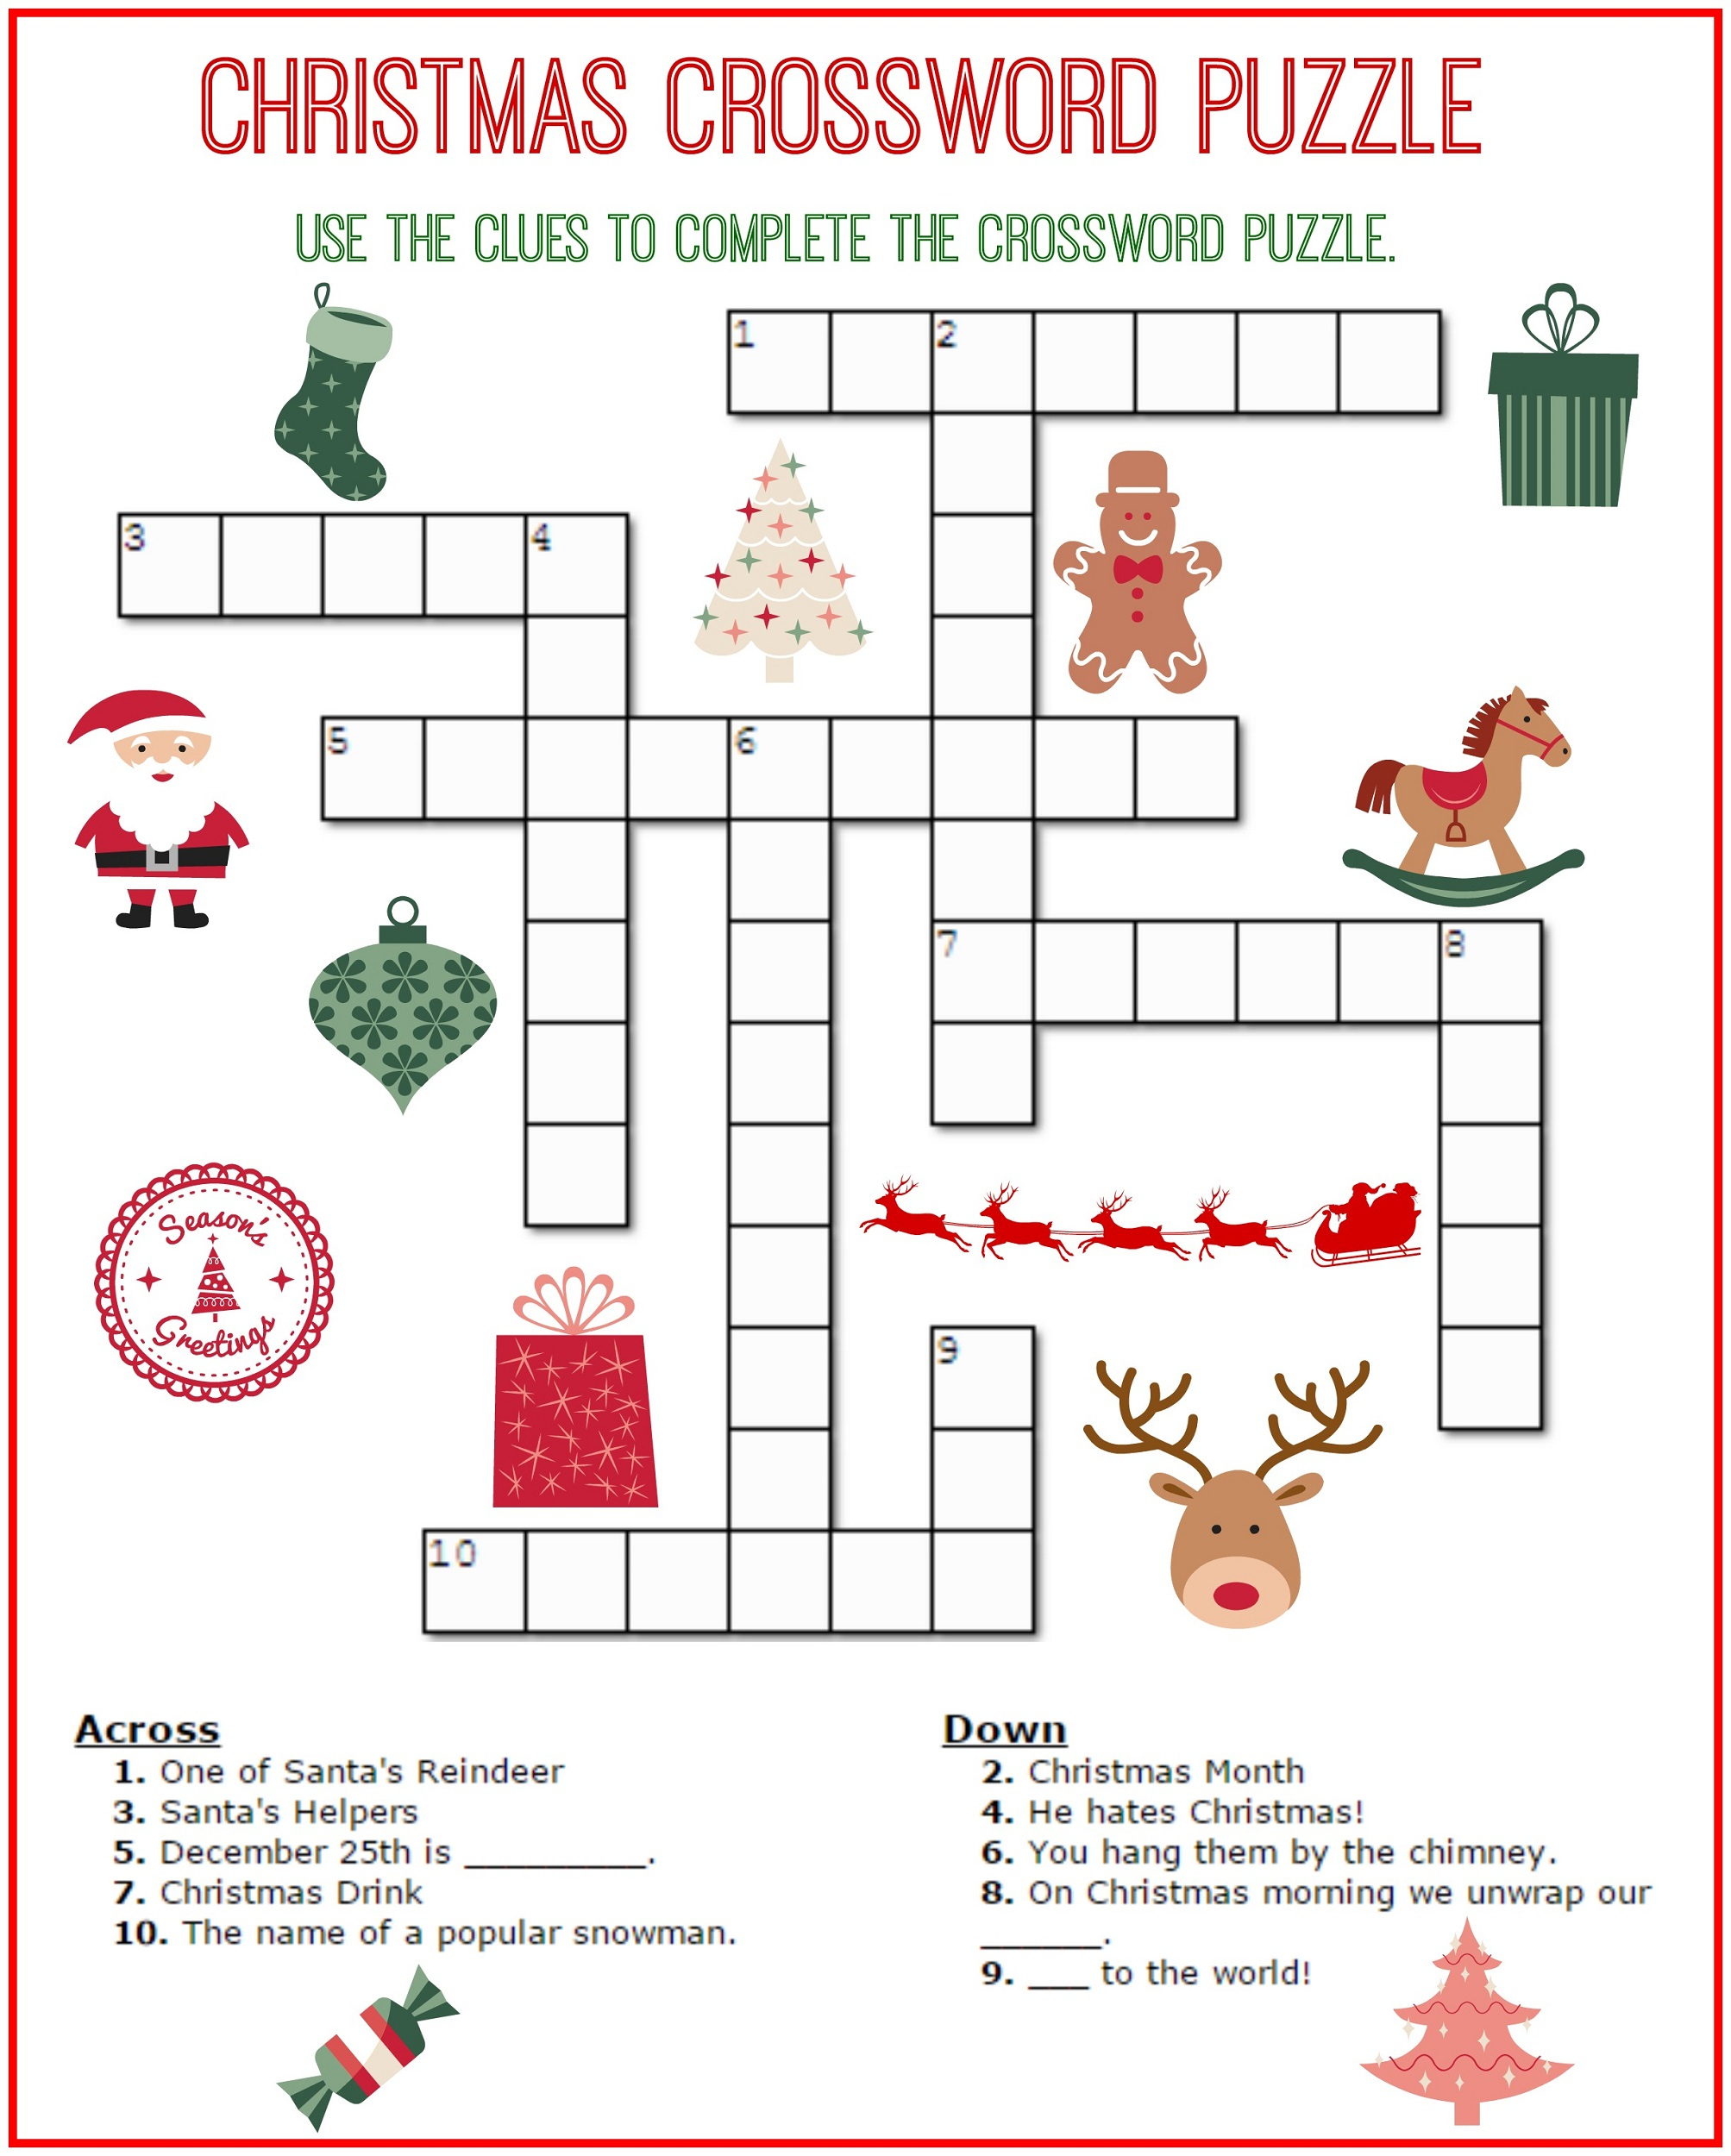 Crossword Puzzle Kids Printable 2017 | Kiddo Shelter - Free Easy - Easy Crossword Puzzles Printable For Kids